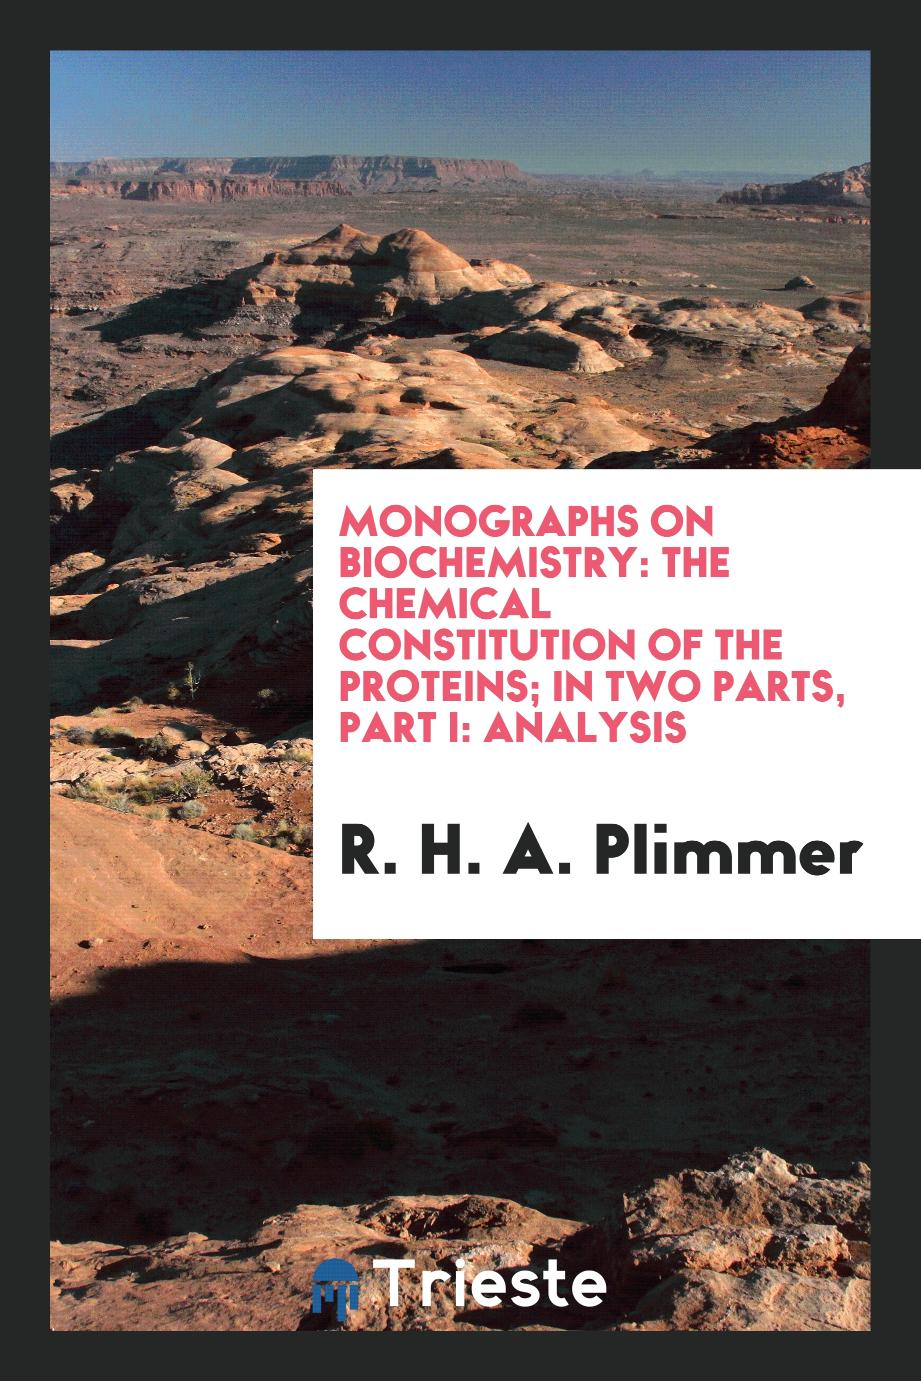 Monographs on Biochemistry: The Chemical Constitution of the Proteins; In Two Parts, Part I: Analysis